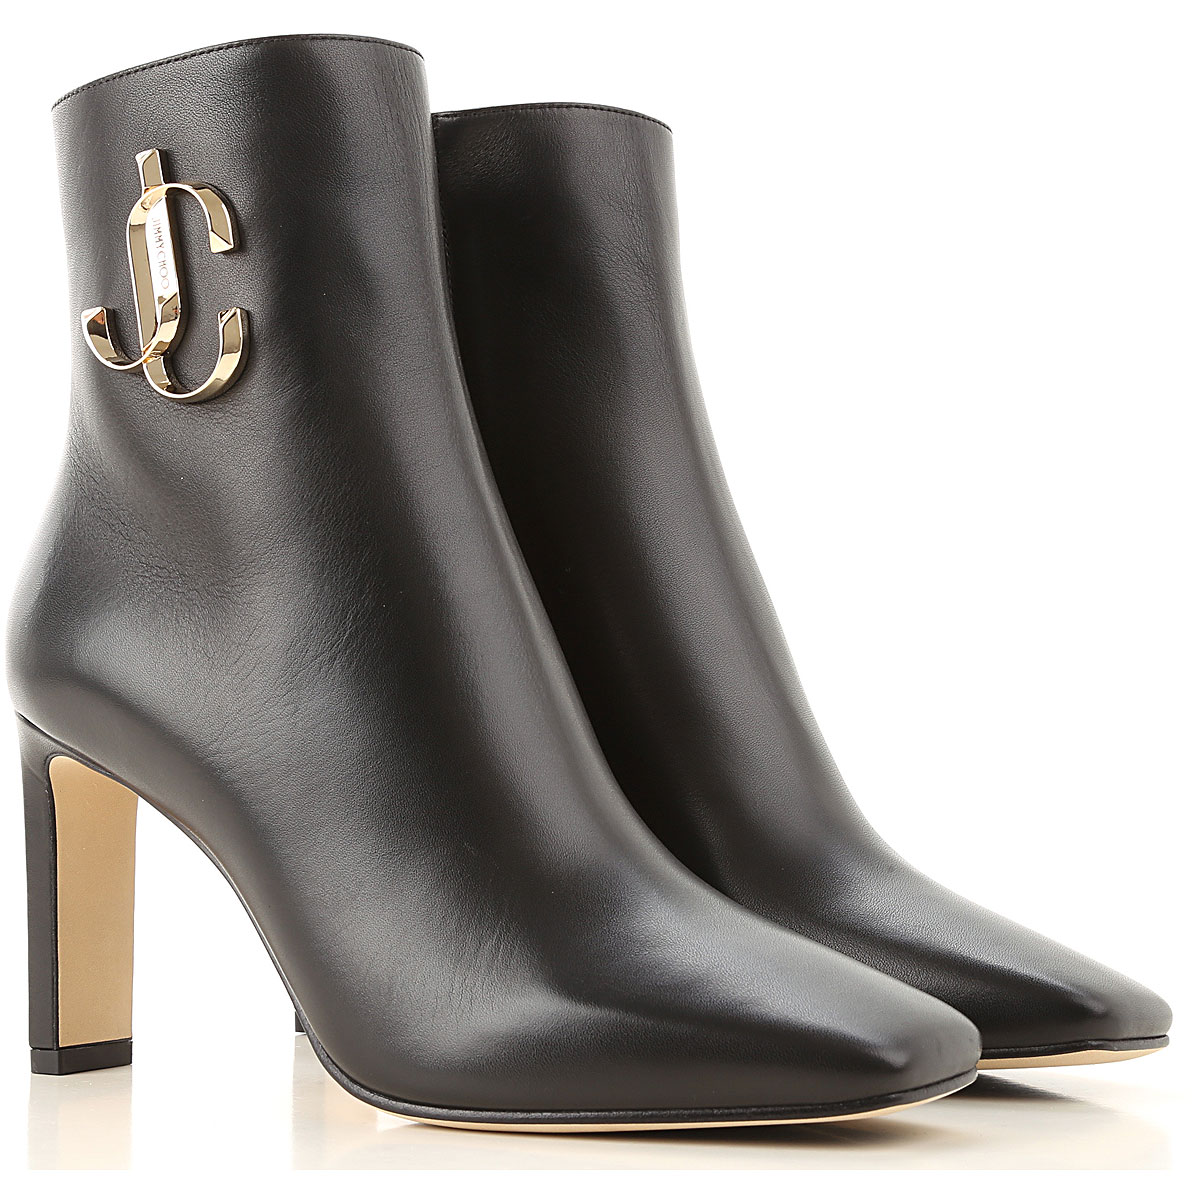 Jimmy Choo Boots for Women, Booties On Sale, Black, Leather, 2019, 10 5 6 6.5 8 8.5 9